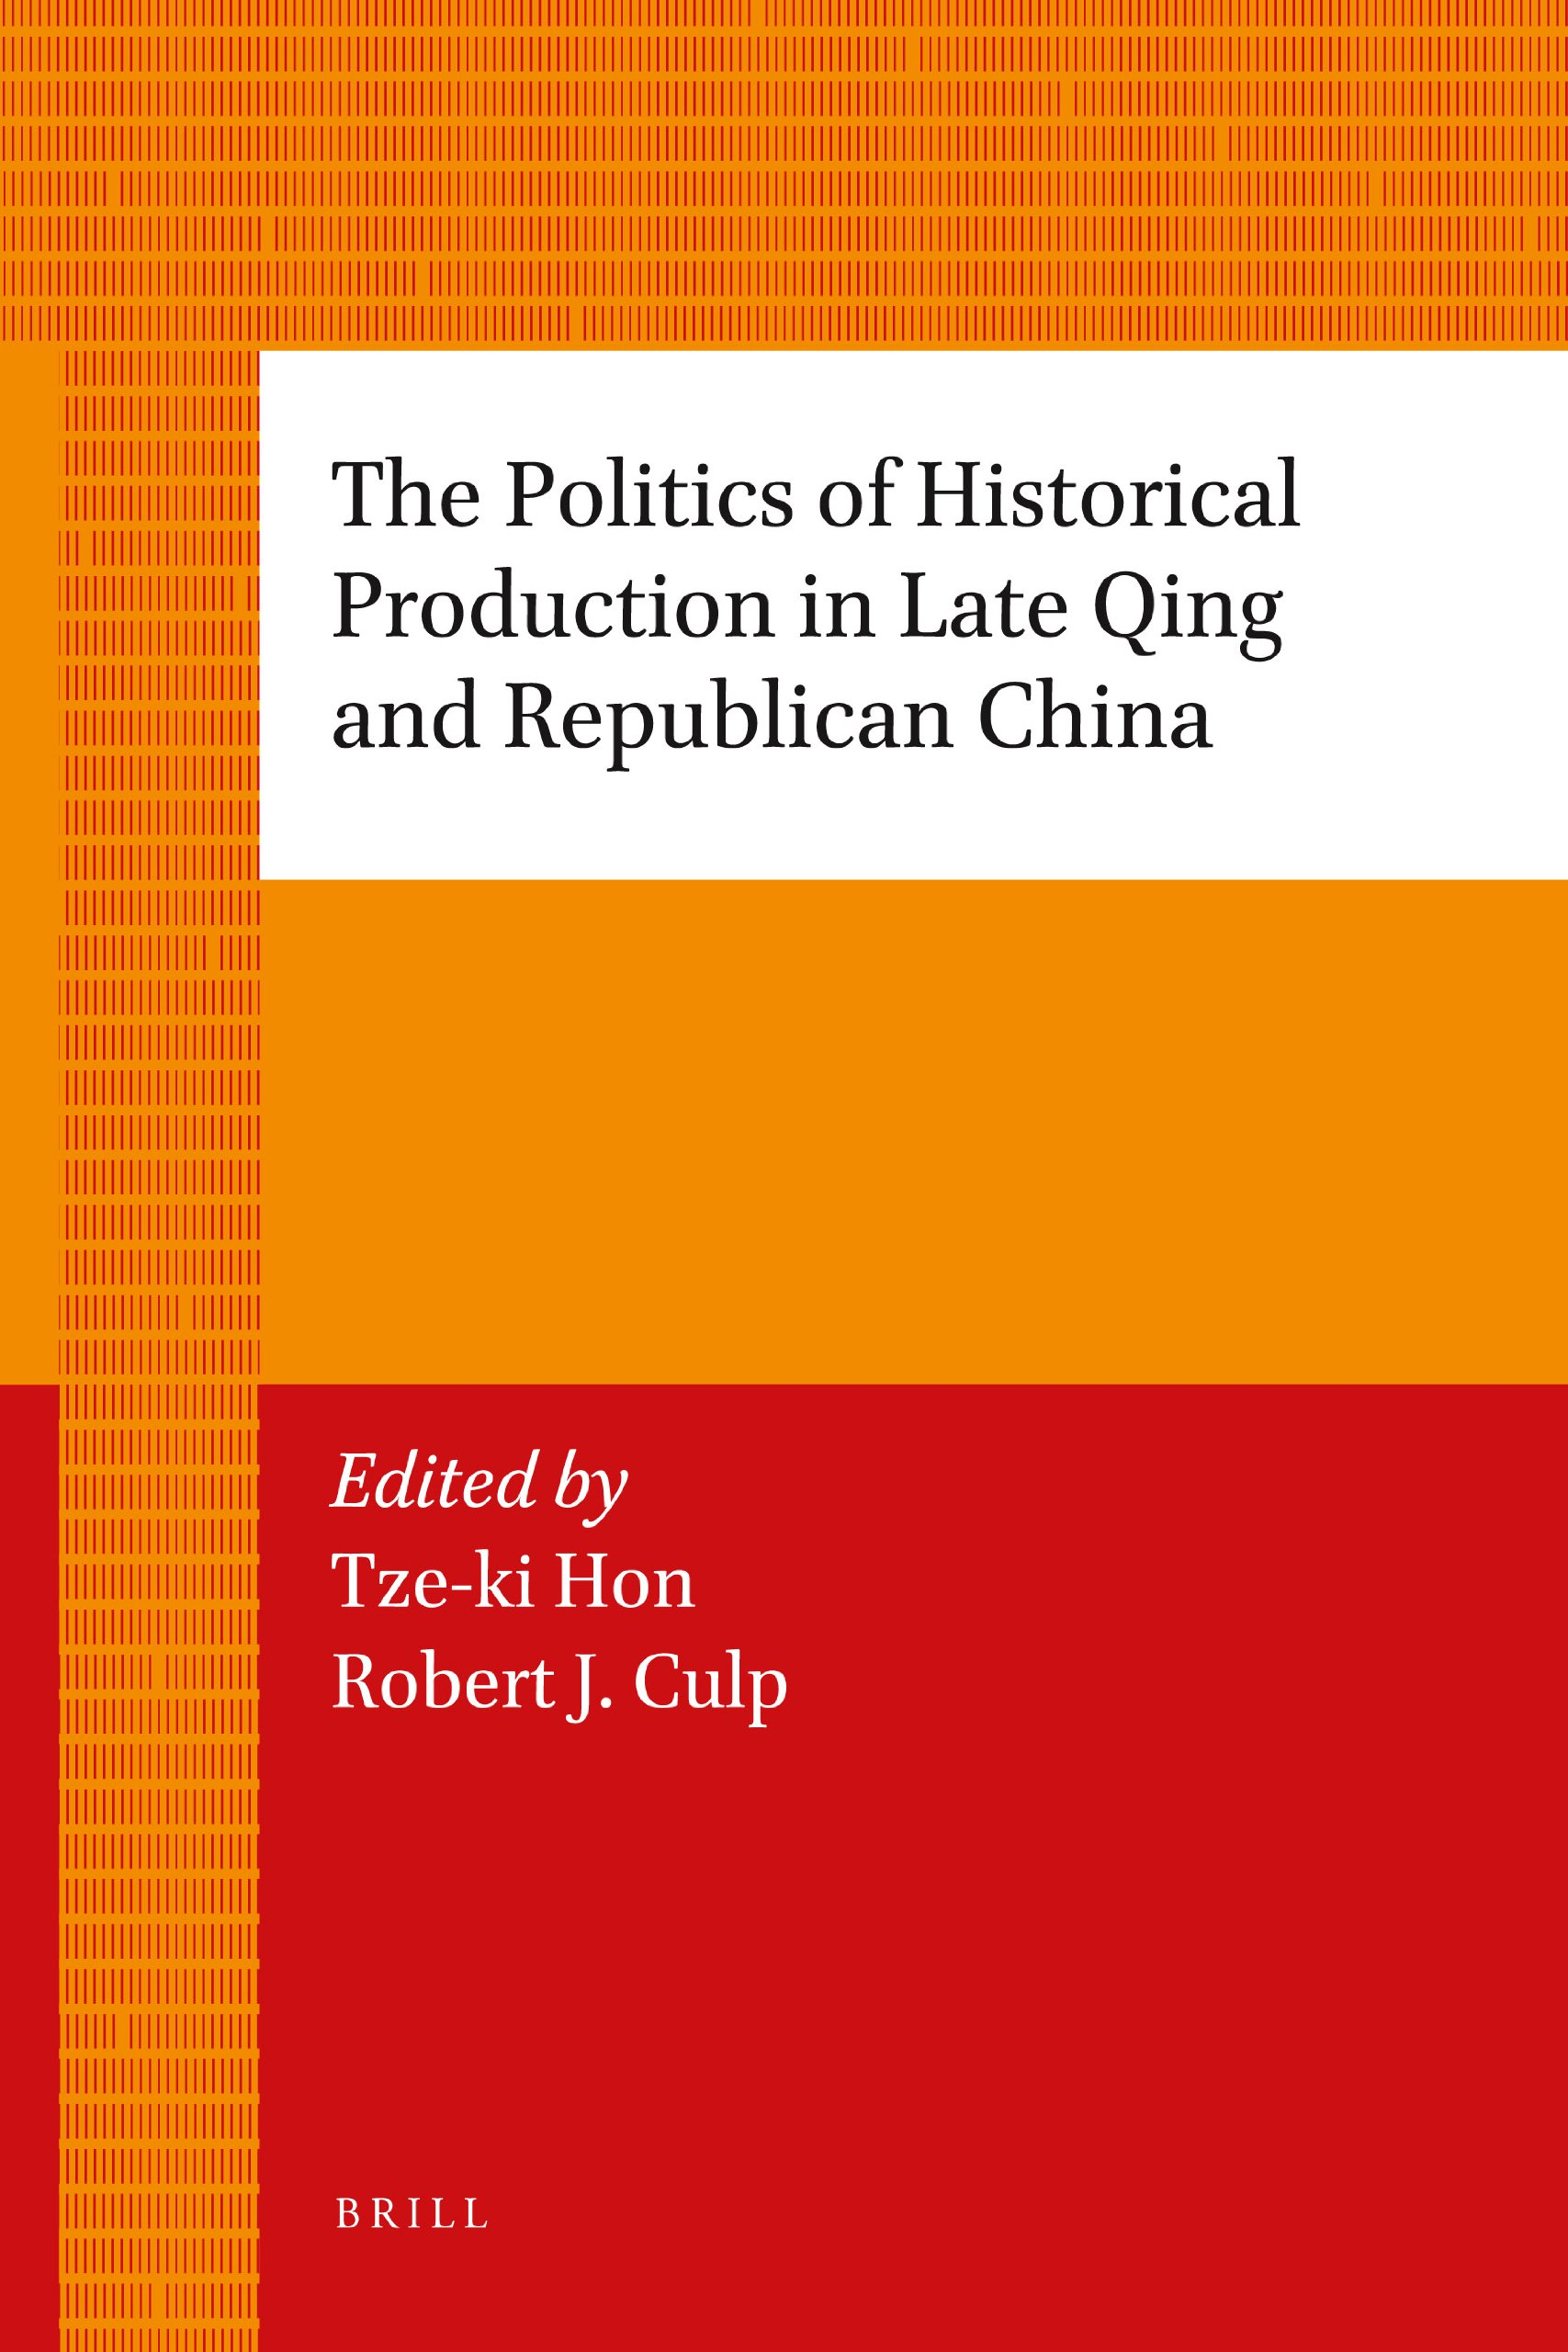 The Politics of Historical Production in Late Qing and Republican China PDF